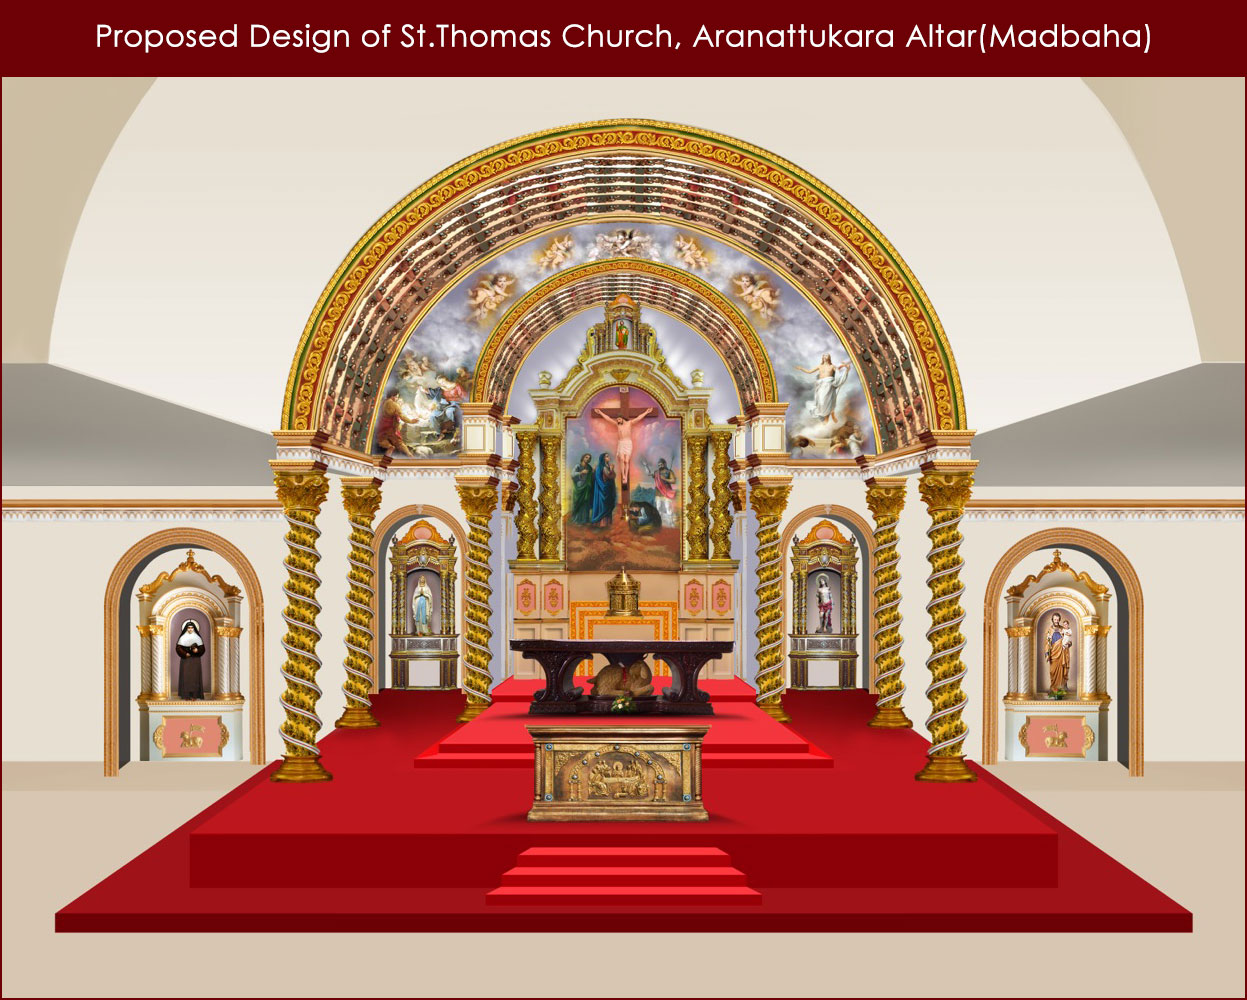 Royalty Free Stock Photos Evangelical Church Image17213118 moreover  moreover State Archive Of The Evangelical Lutheran Church By Gmp 08 as well Christian Anniversary Images besides Skw Holy Nativity Church. on evangelical church interior design